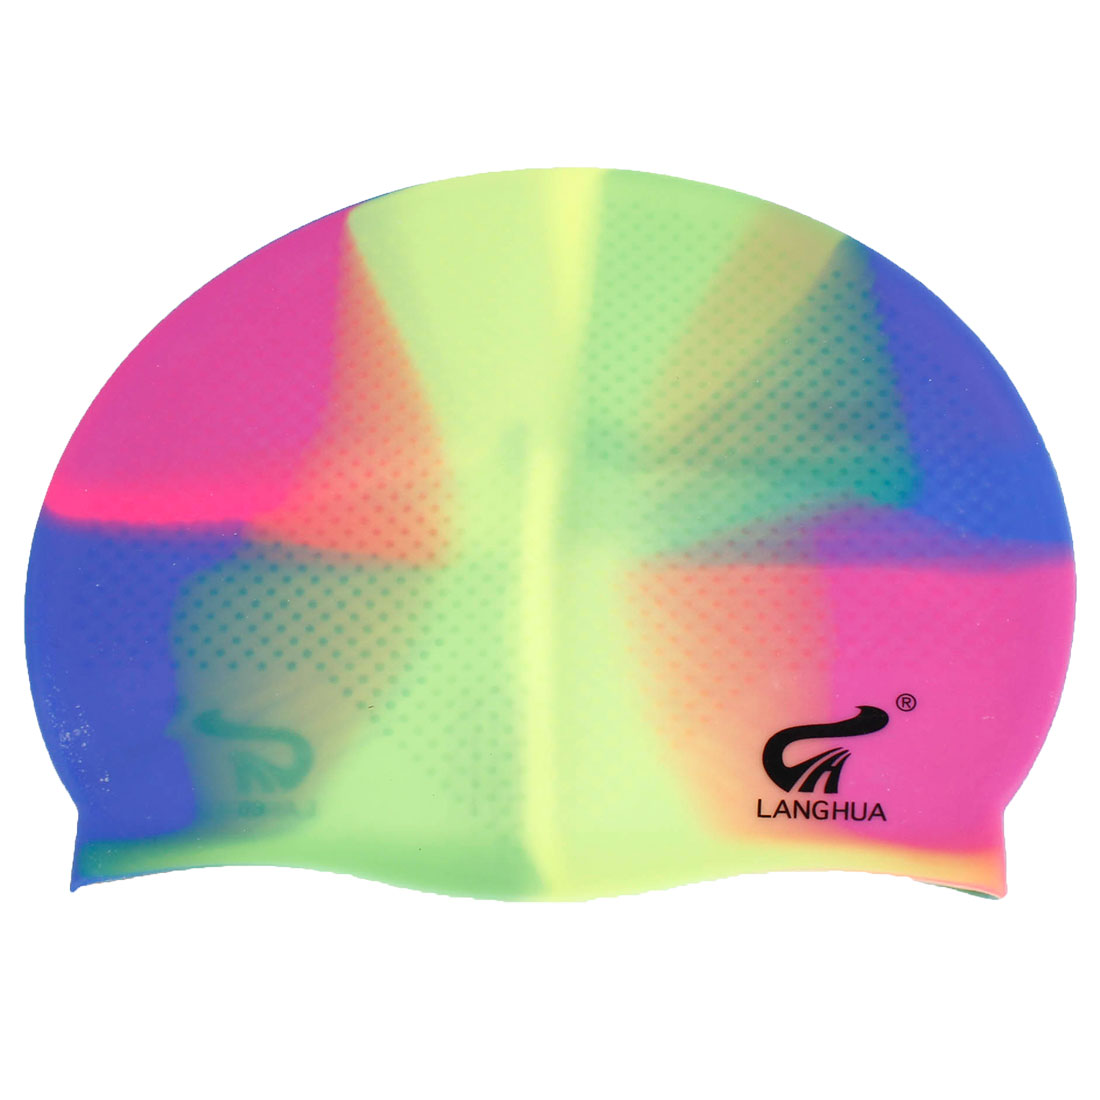 Unisex Dome Shaped Beach Pool Soft Silicone Swimming Hat Cap Assorted Color